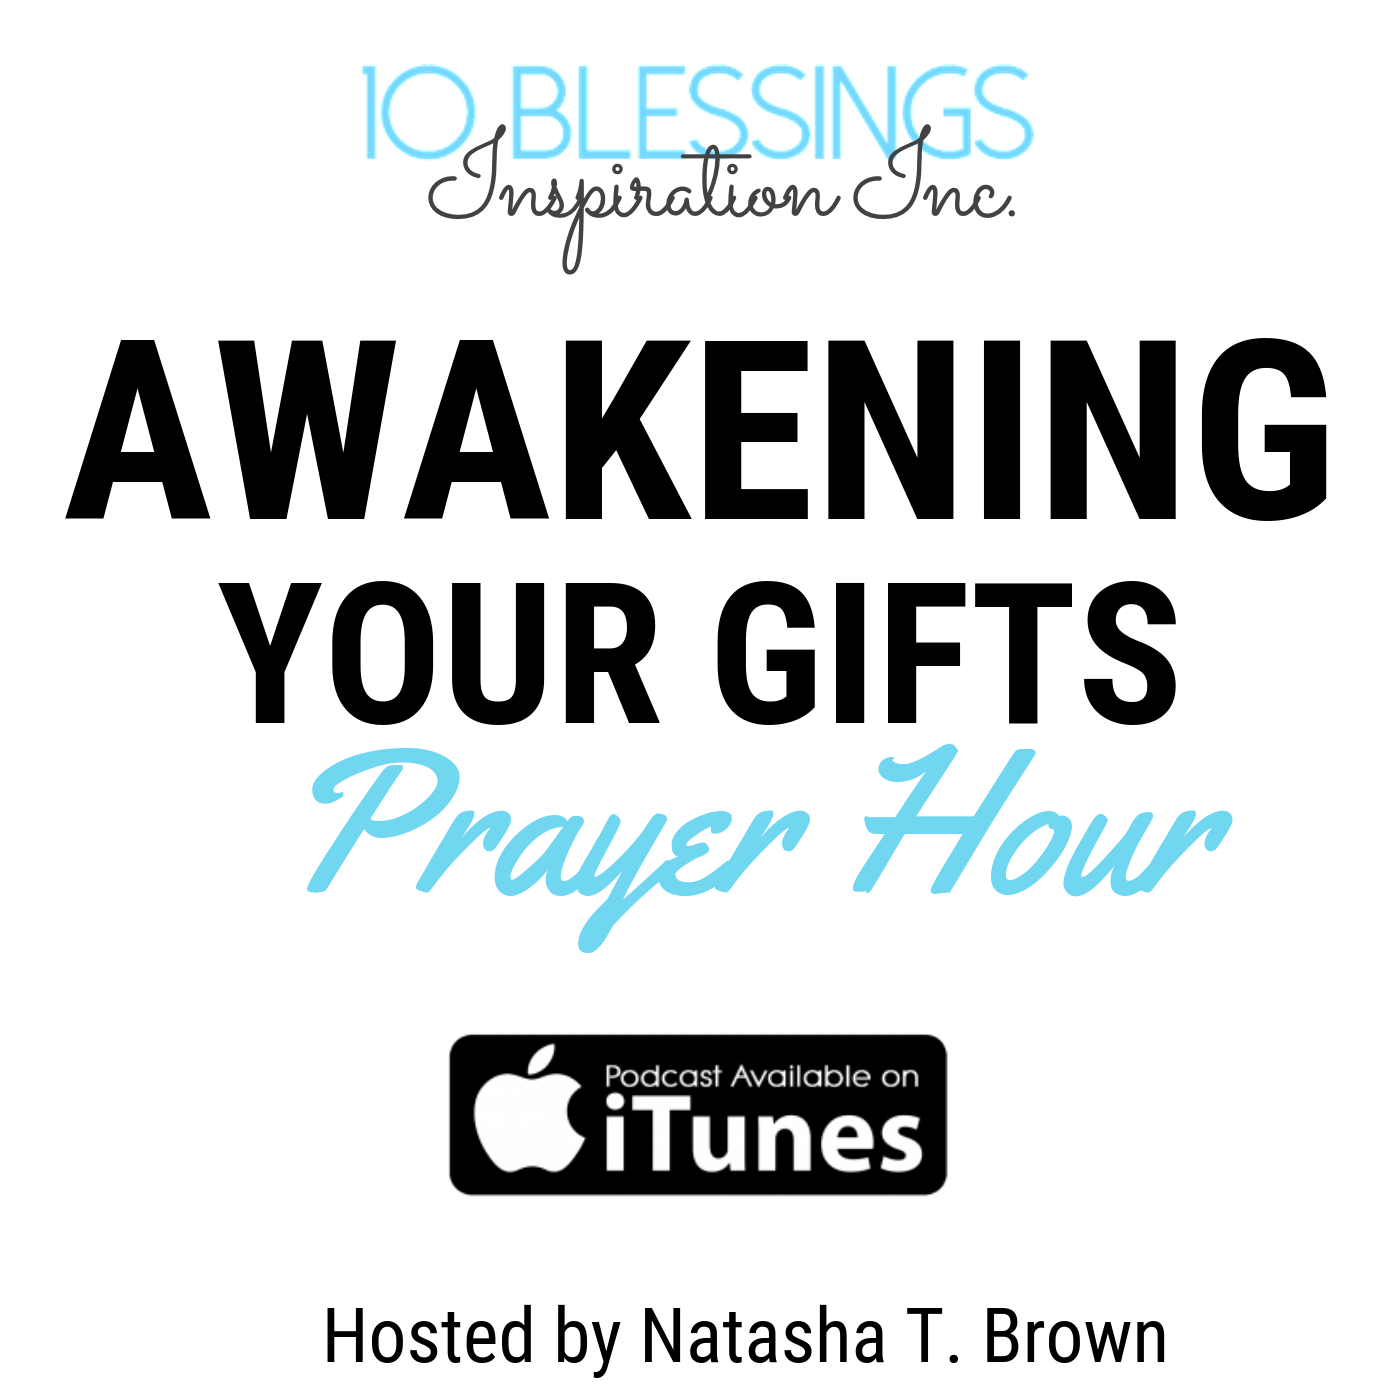 AWAKENING YOUR GIFTS PRAYER HOUR - About Awakening Your GiftsWe have been honored to serve as prayer partners to hundreds of individuals around the globe since the launch of Awakening Your Gifts in December of 2015. Awakening Your Gifts (Dec. 2015-June 2019) was a weekly prayer-hour podcast and call that inspires, strengthens, and uplifts callers and listeners through powerful Bible-based teaching, encouragement, prayer and powerful interviews. Be inspired to think bigger, do more and overcome life's challenges as the Holy Spirit awakens your gifts through prayer.Awakening Your Gifts is now THE VICTORY PRAYER CIRCLE!